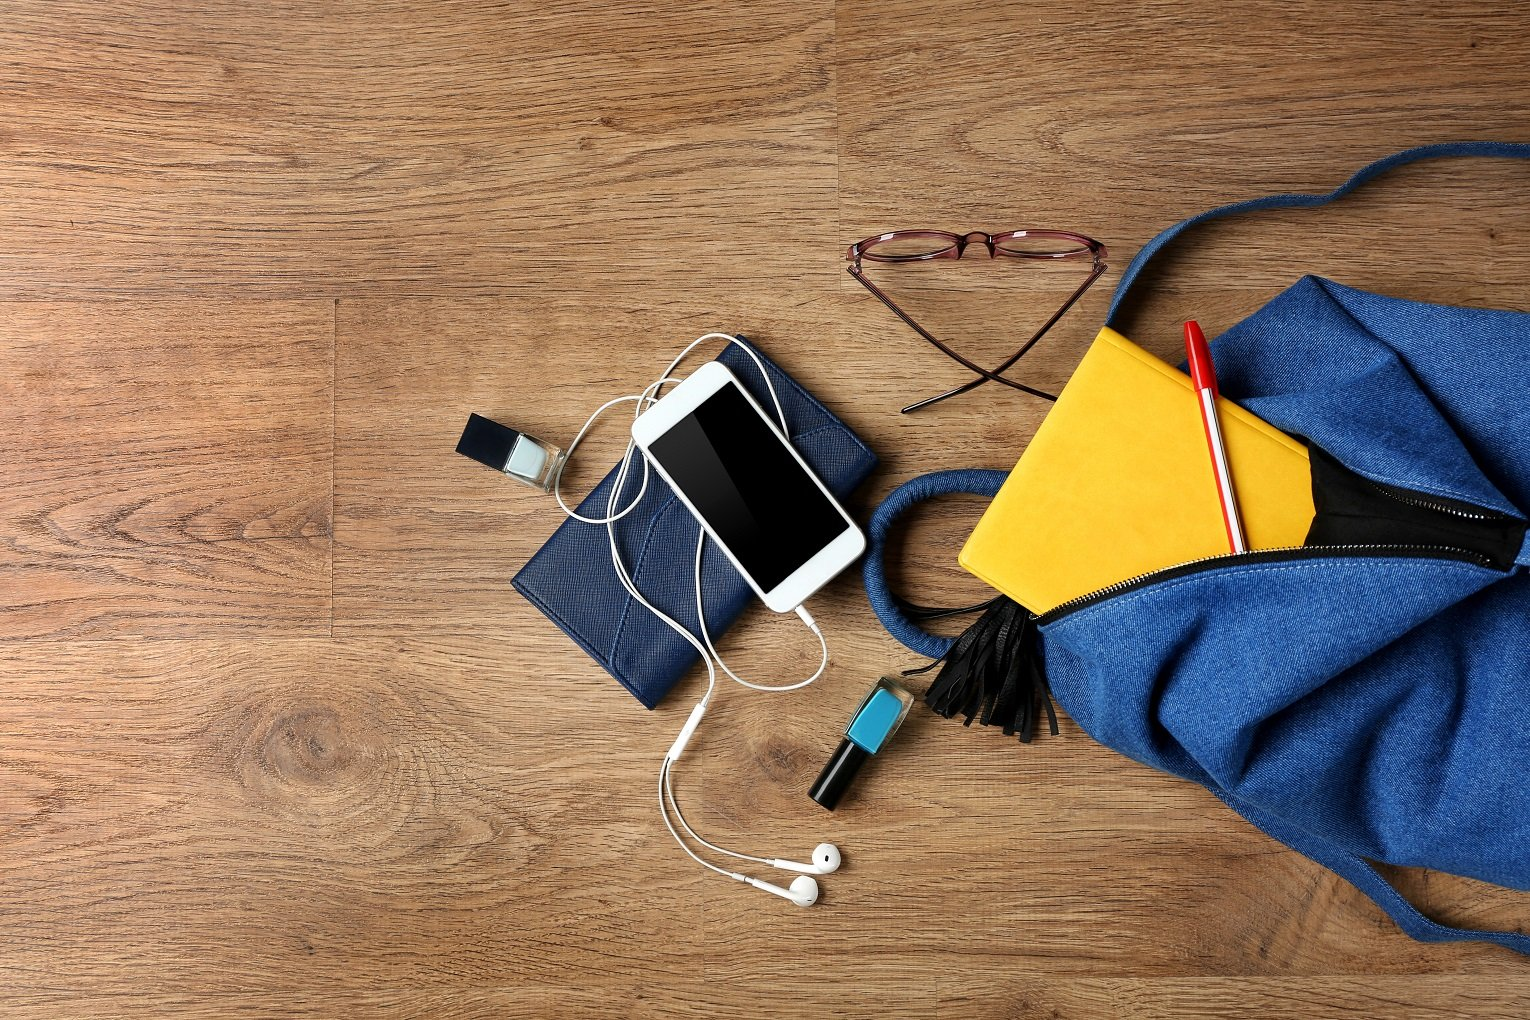 cell phone batteries backpack with accessories on wooden floor